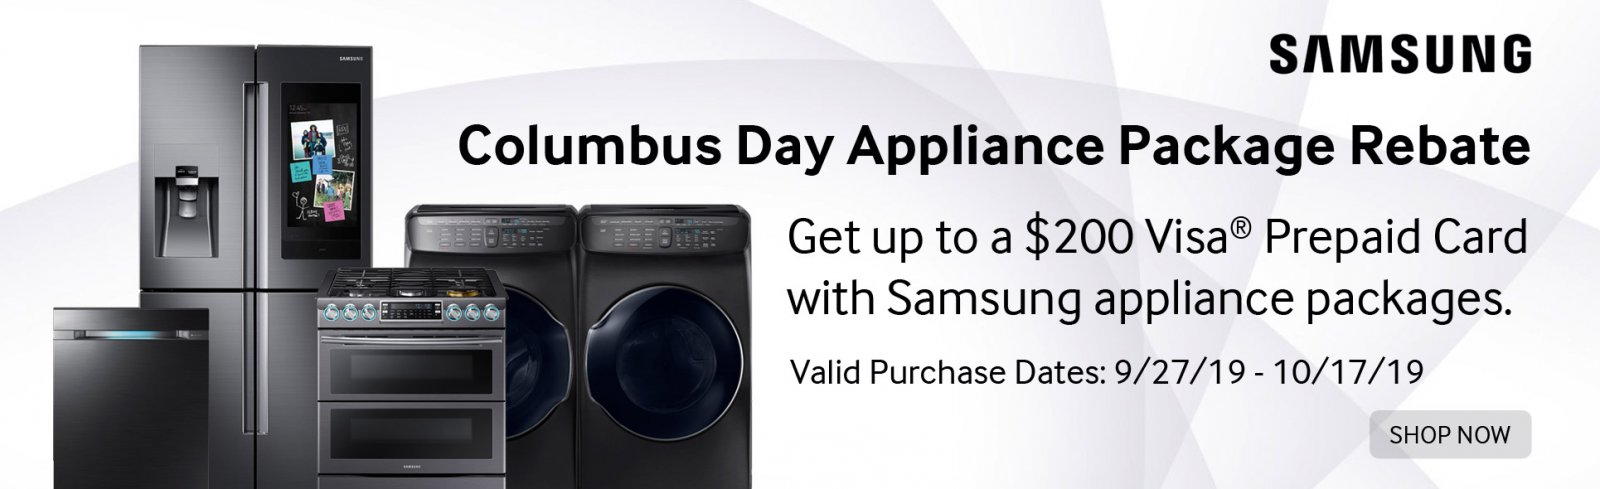 Samsung Columbus Day Event